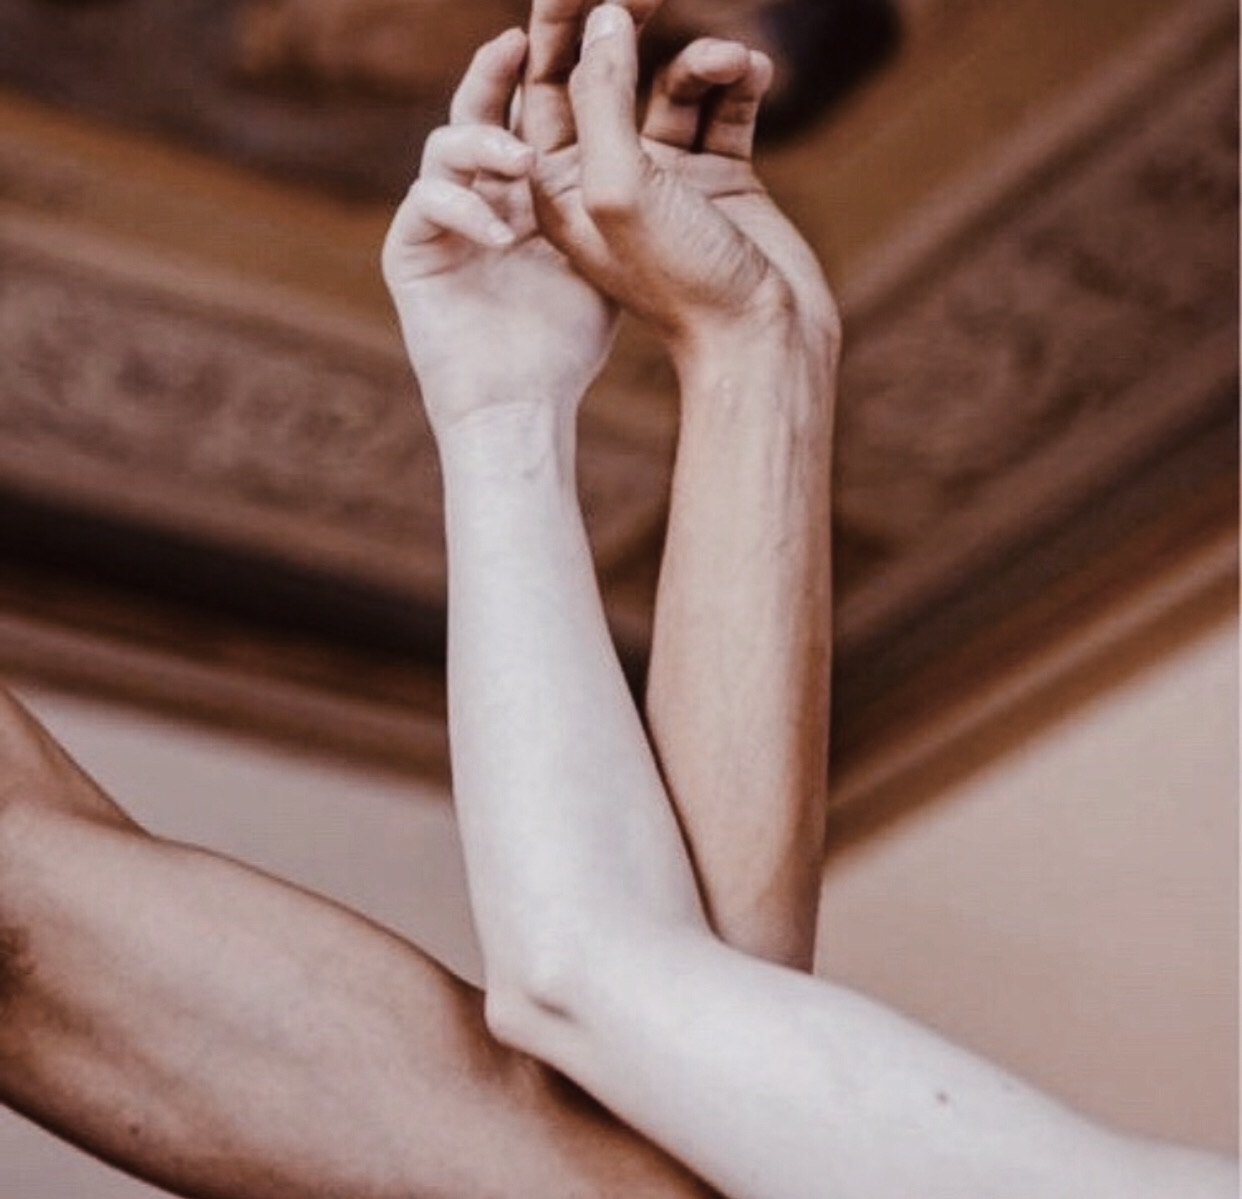 aesthetics, love, and difference between us image